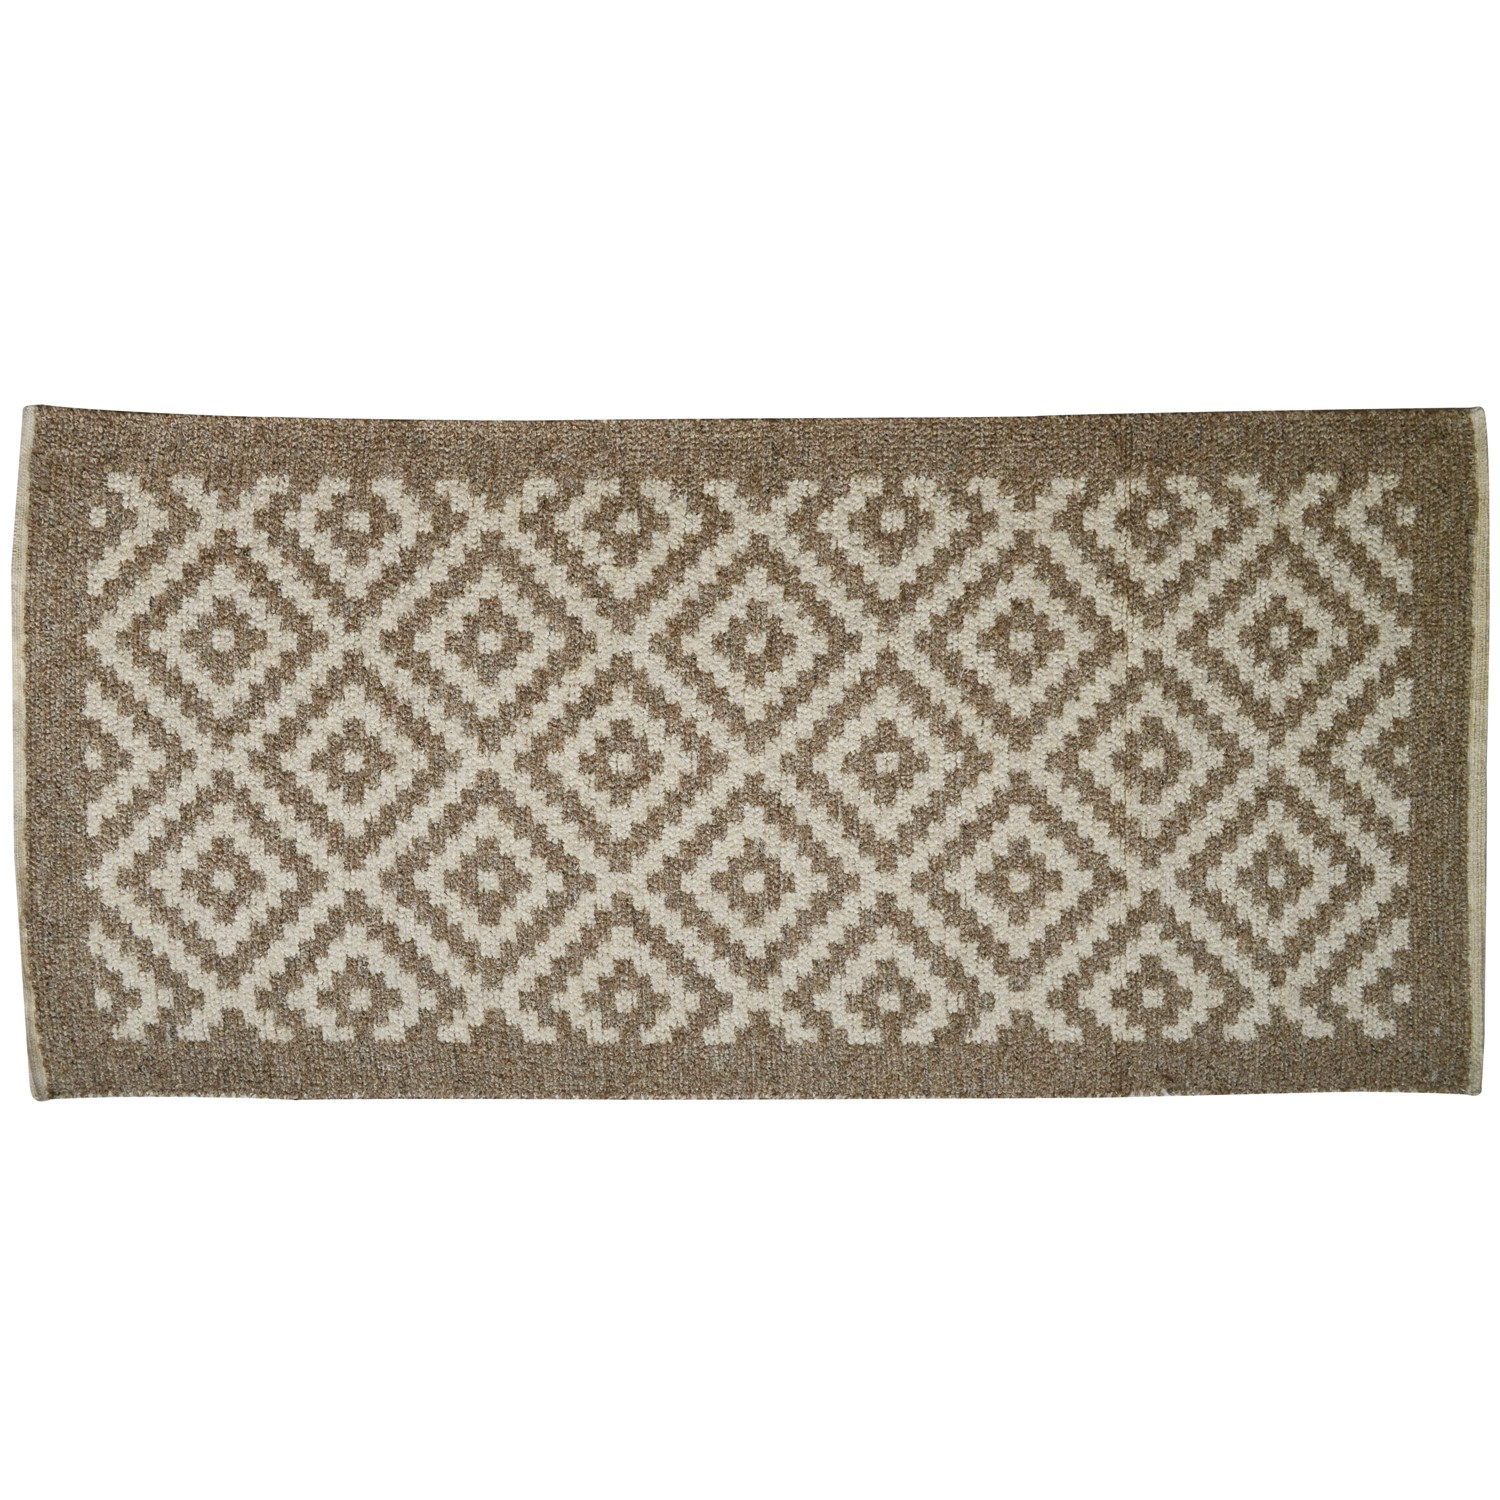 Island_Two-Sided_Summer-Rug_Beige-1